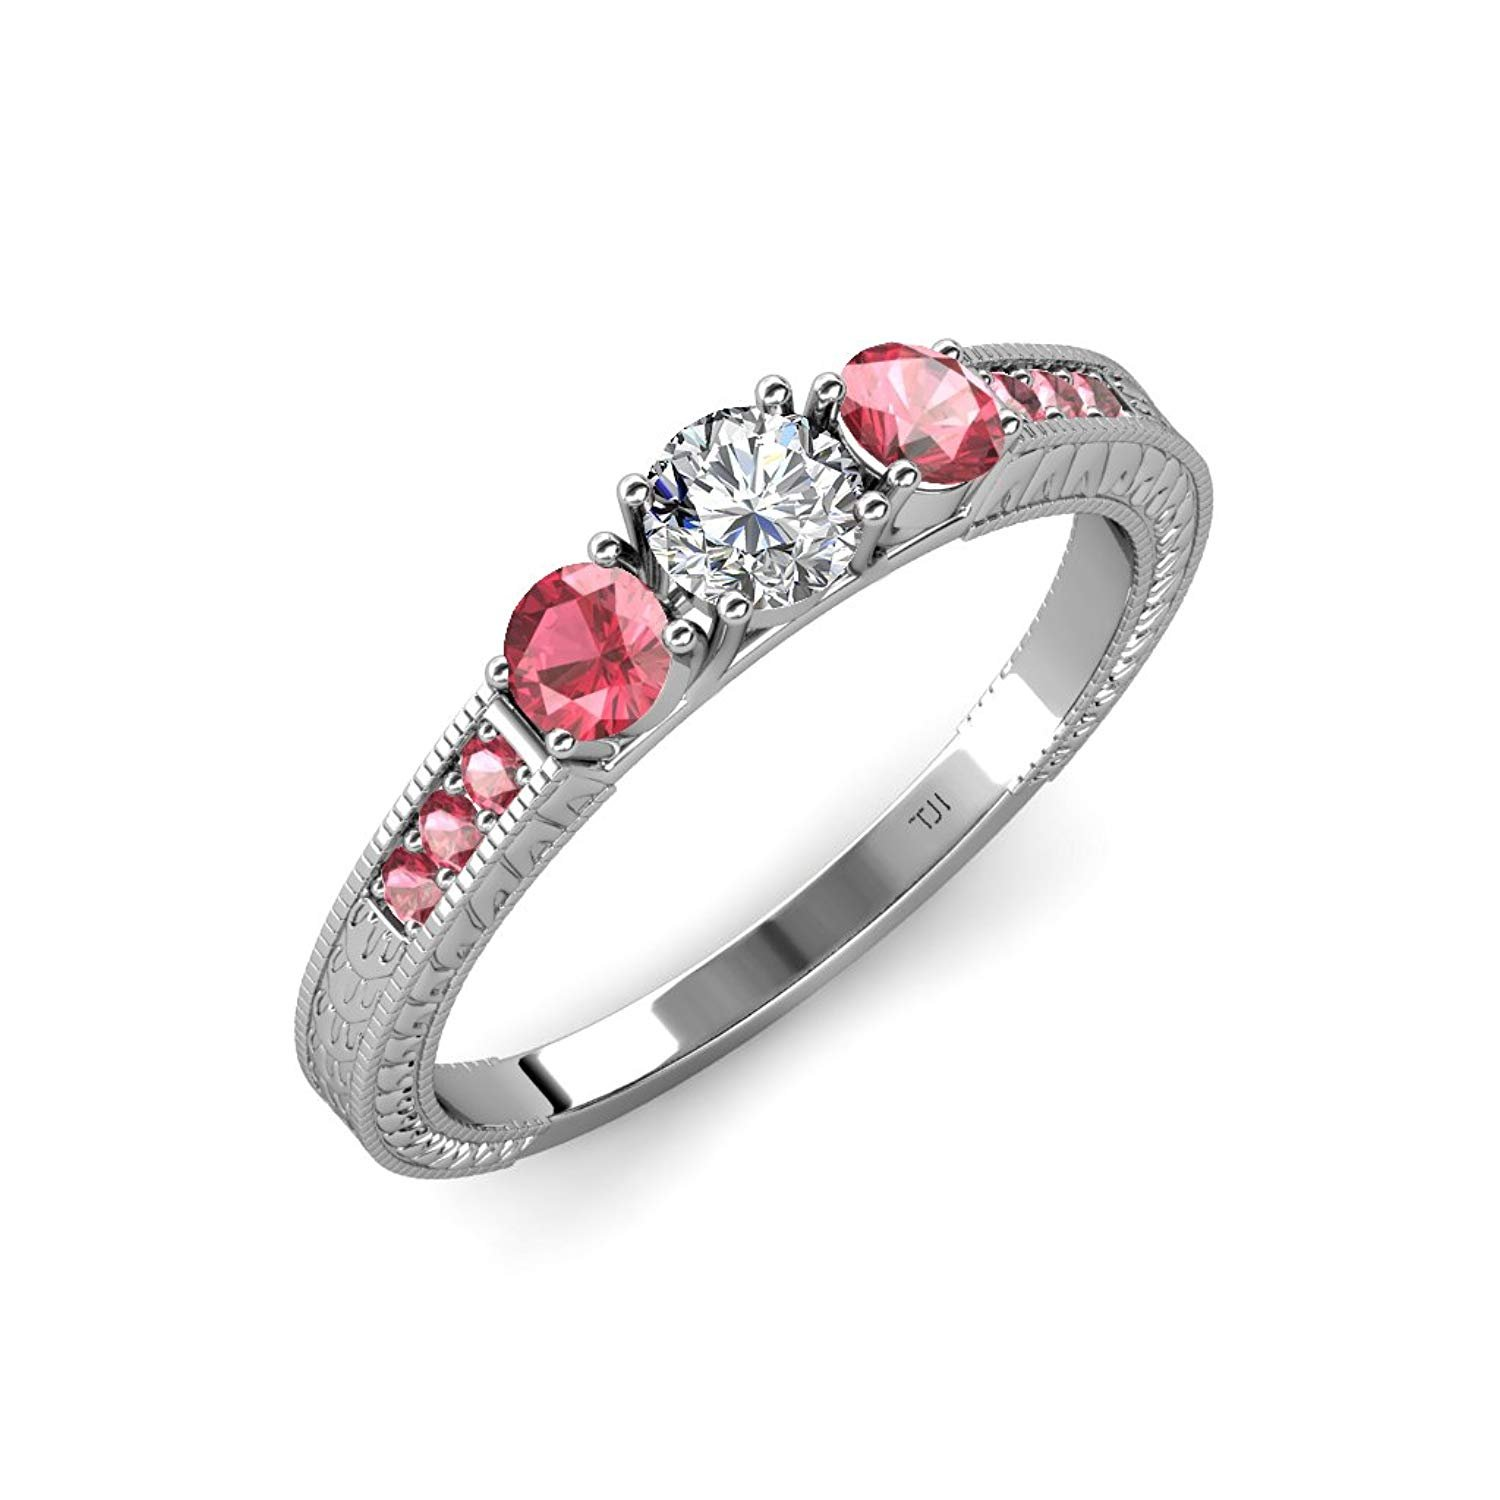 Diamond and Pink Tourmaline 3 Stone Ring with Side Pink Tourmaline 0.83 ct tw in 14K White Gold.size 6.5 by TriJewels